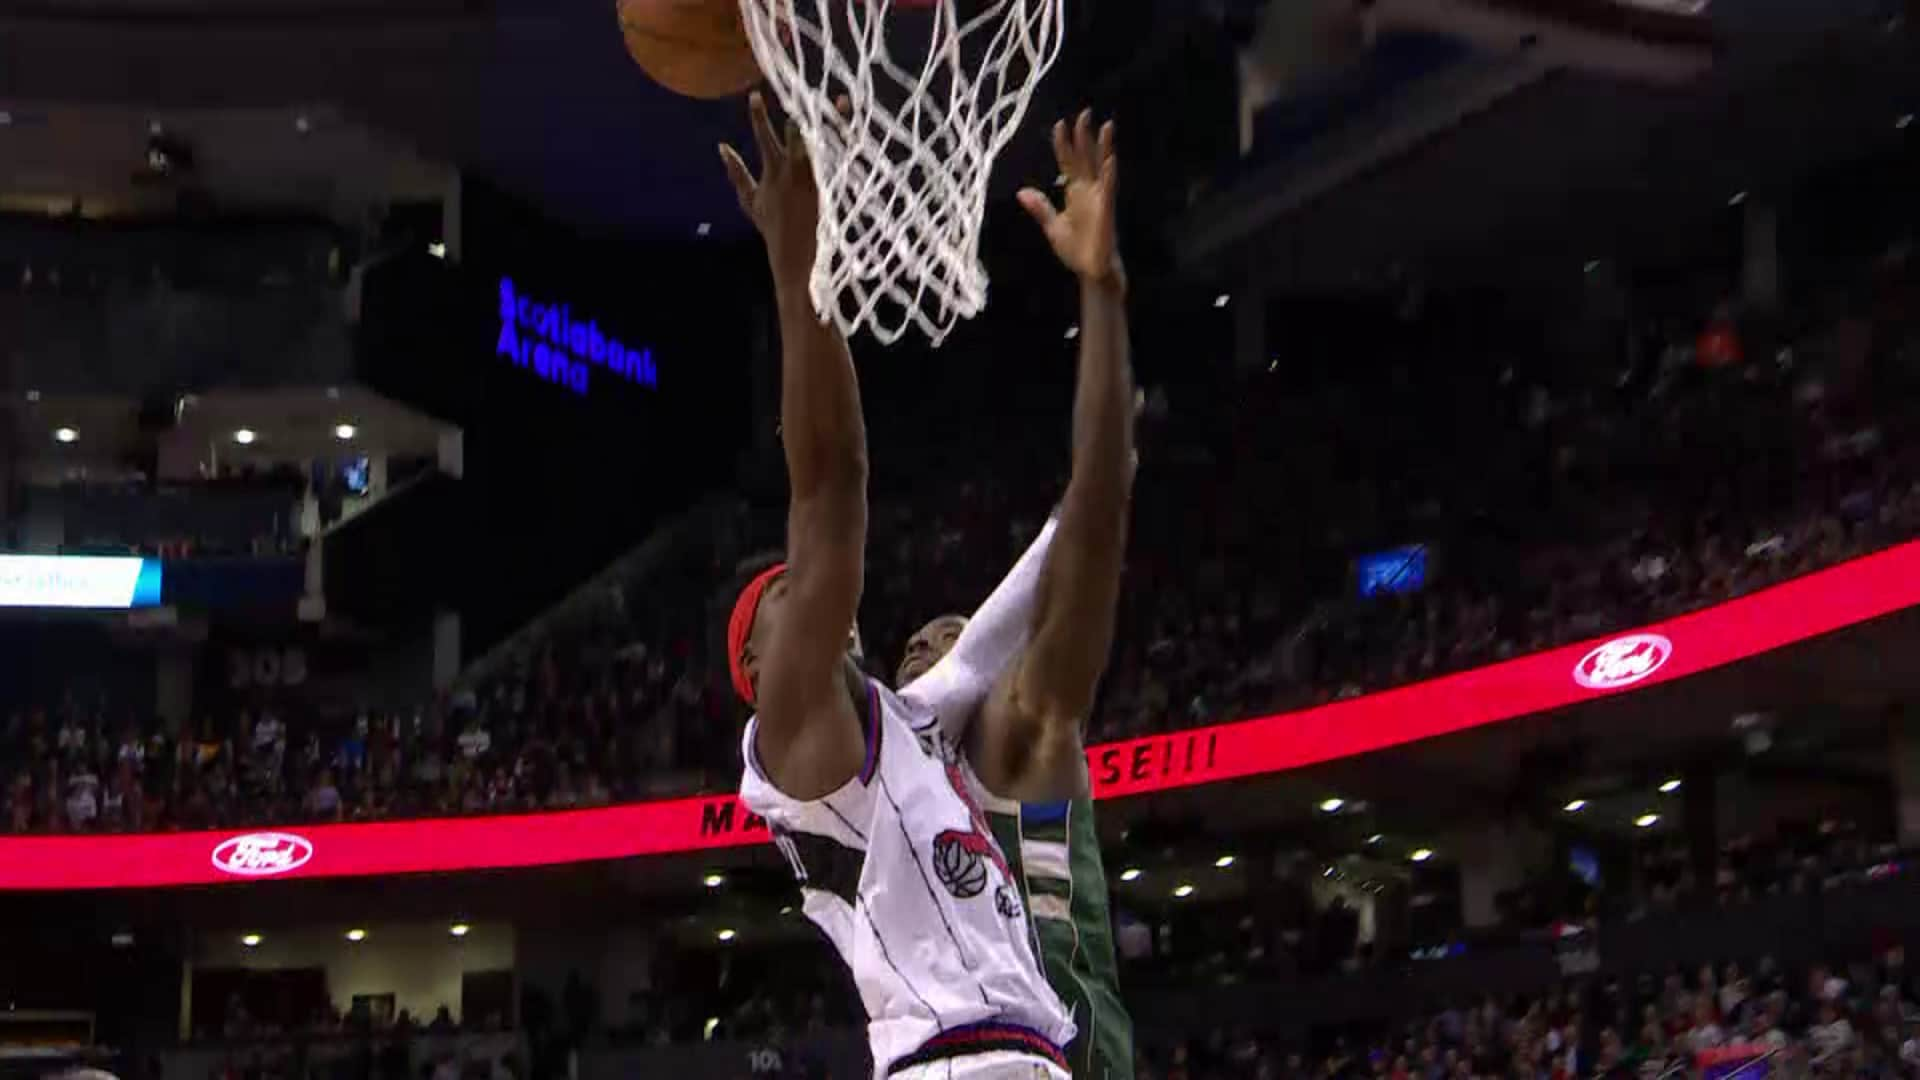 Raptors Highlights: Davis And 1 - February 25, 2020